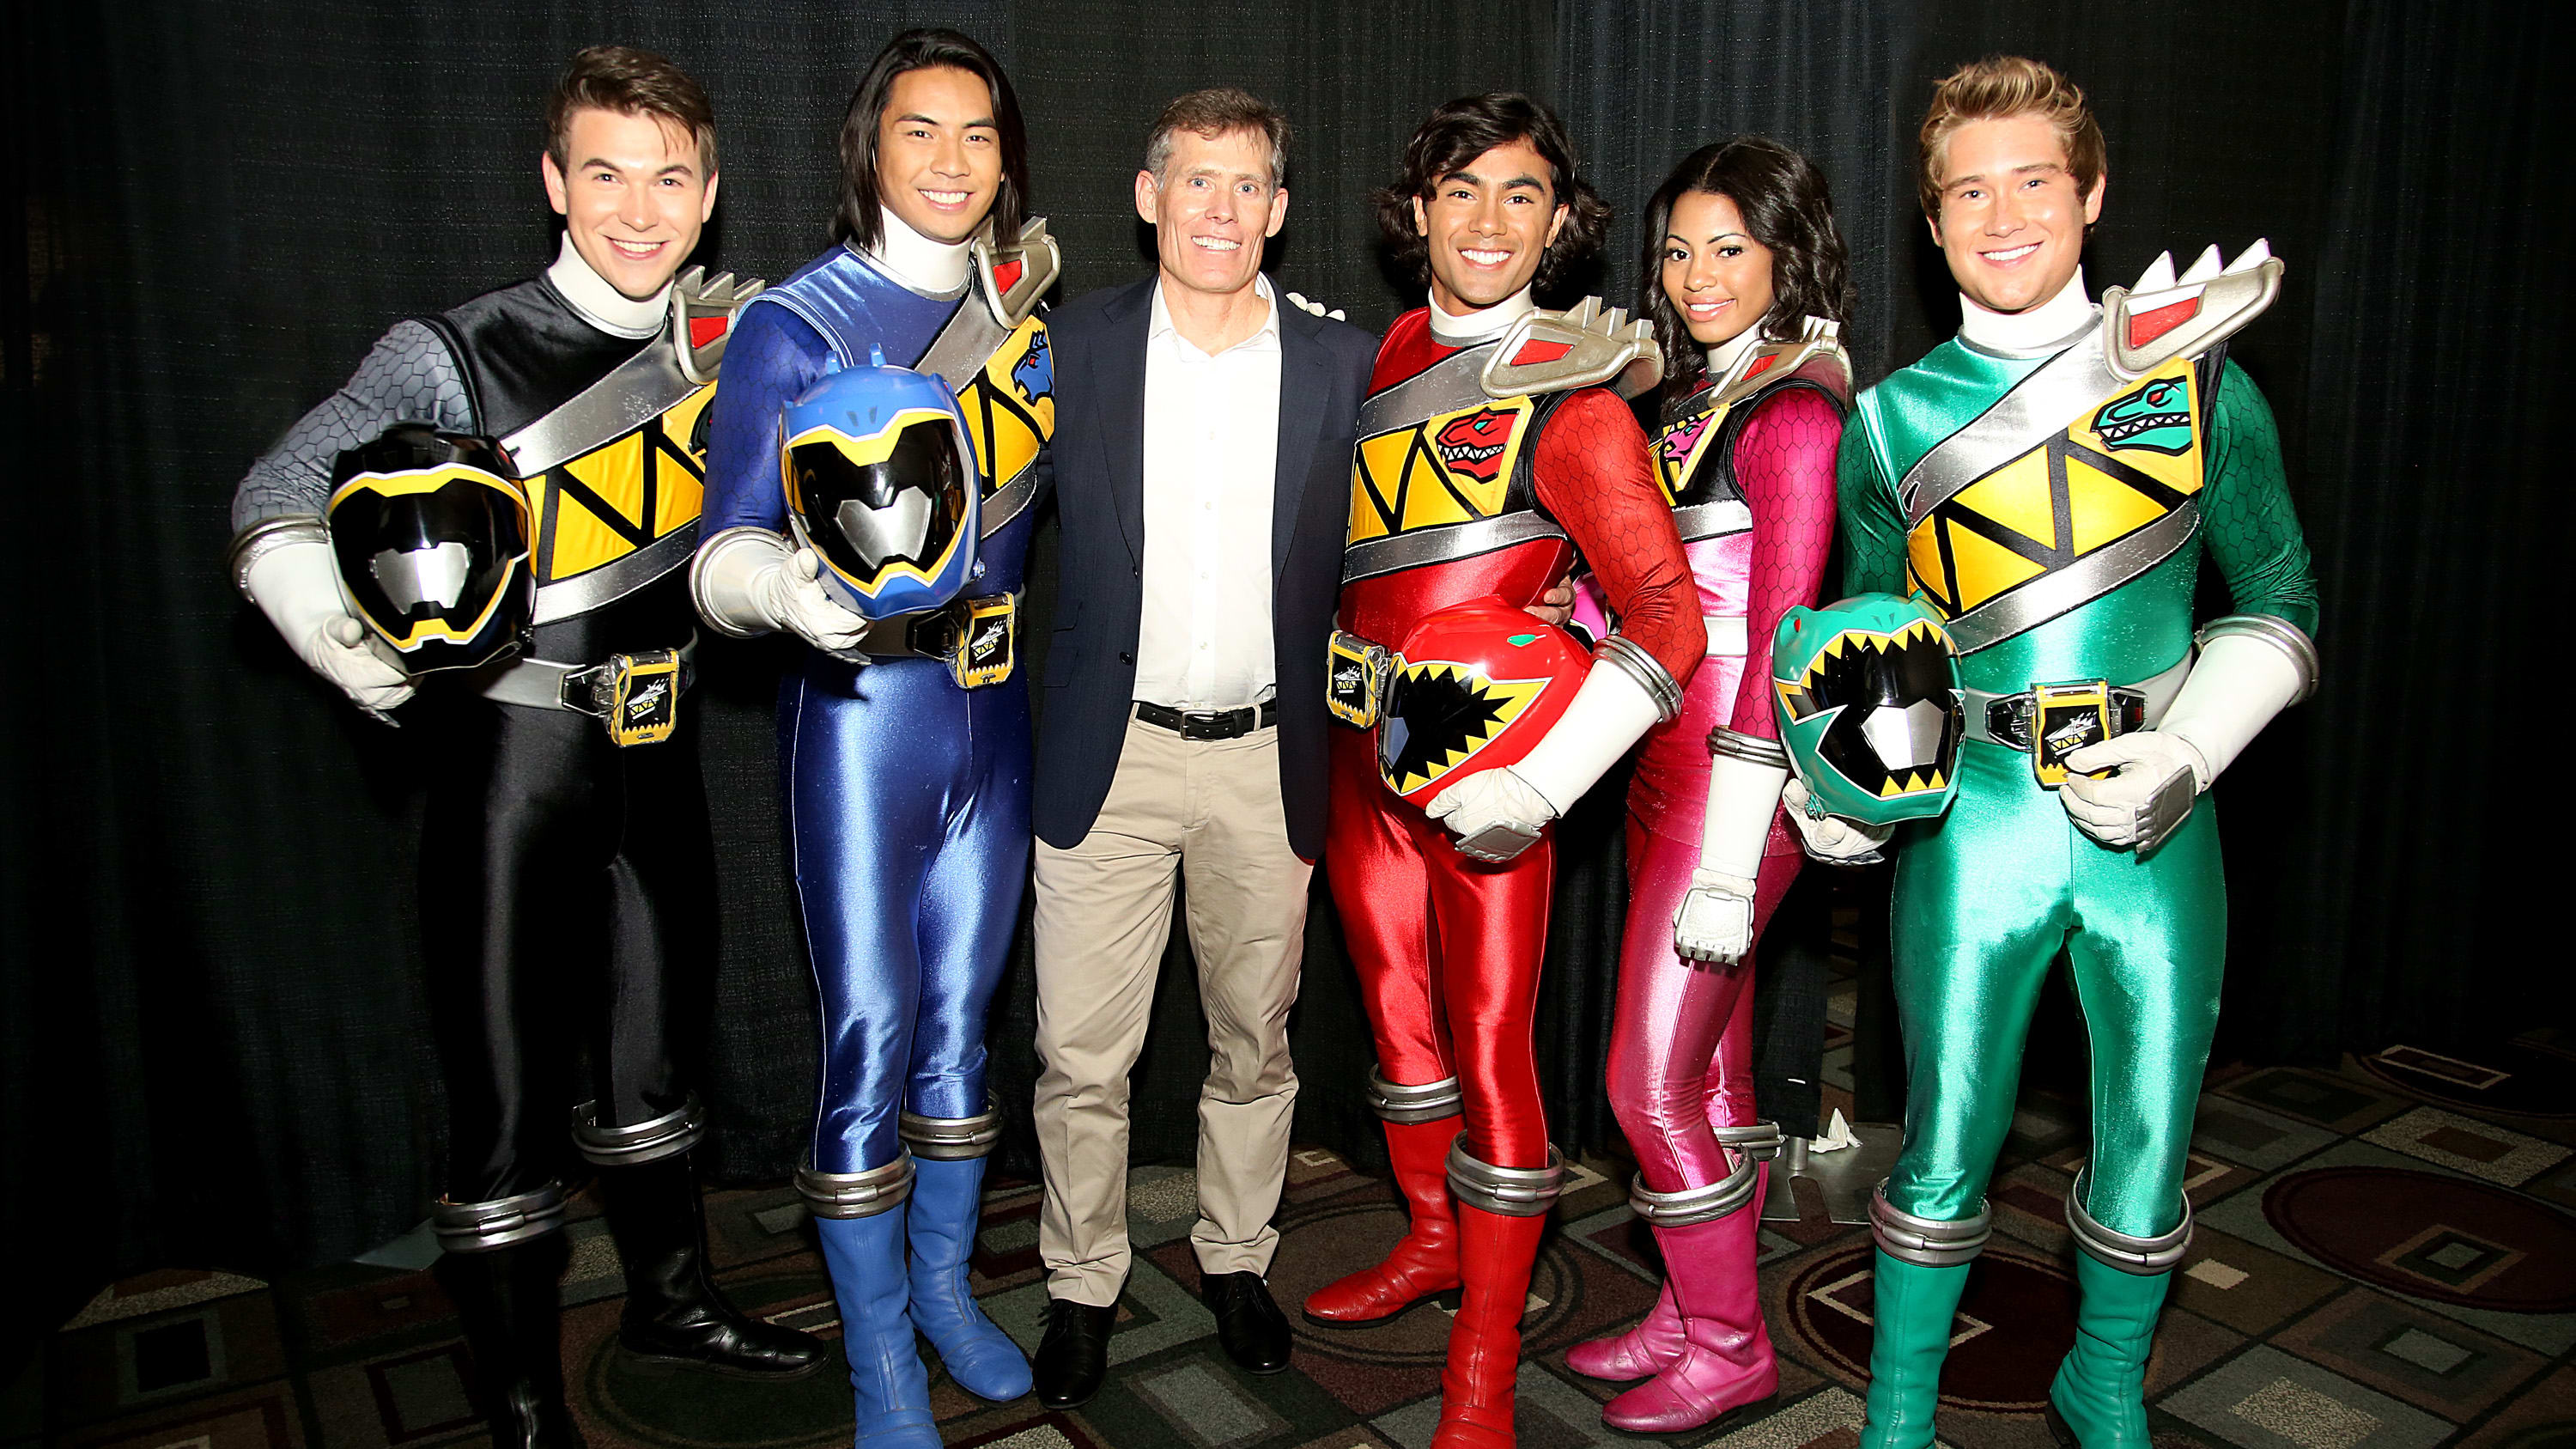 PASADENA, CA - AUGUST 23: (L-R) The new cast of Power Rangers Dino Charge, including James Davies (Black Dino Charge Ranger), Yoshi Sudarso (Blue Dino Charge Ranger), Brennan Mejia (Red Dino Charge Ranger), Camille Manning Hyde (Pink Dino Charge Ranger) and Michael Taber (Green Dino Charge Ranger) pose with Executive Producer Chip Lynn at the 4th bi-annual Power Morphicon Convention in Pasadena, CA. (Photo by Rachel Murray/Getty Images for Saban Brands)